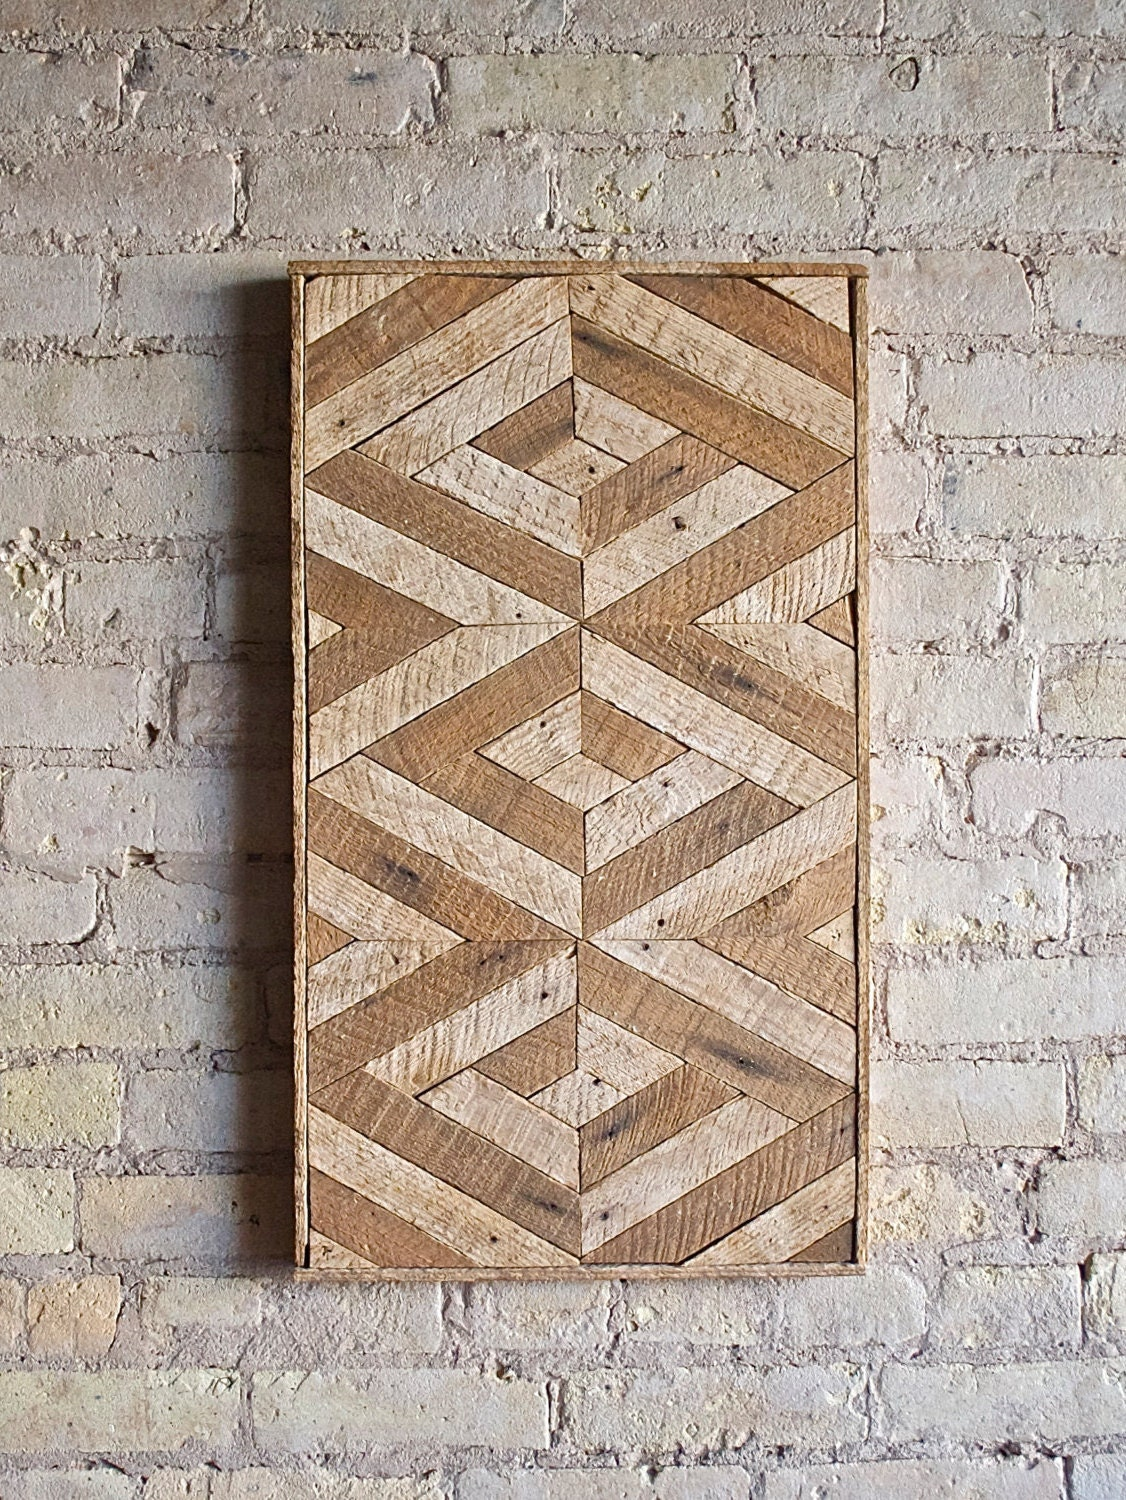 Reclaimed Wood Wall Art Lath DecorPattern 3D Geometric